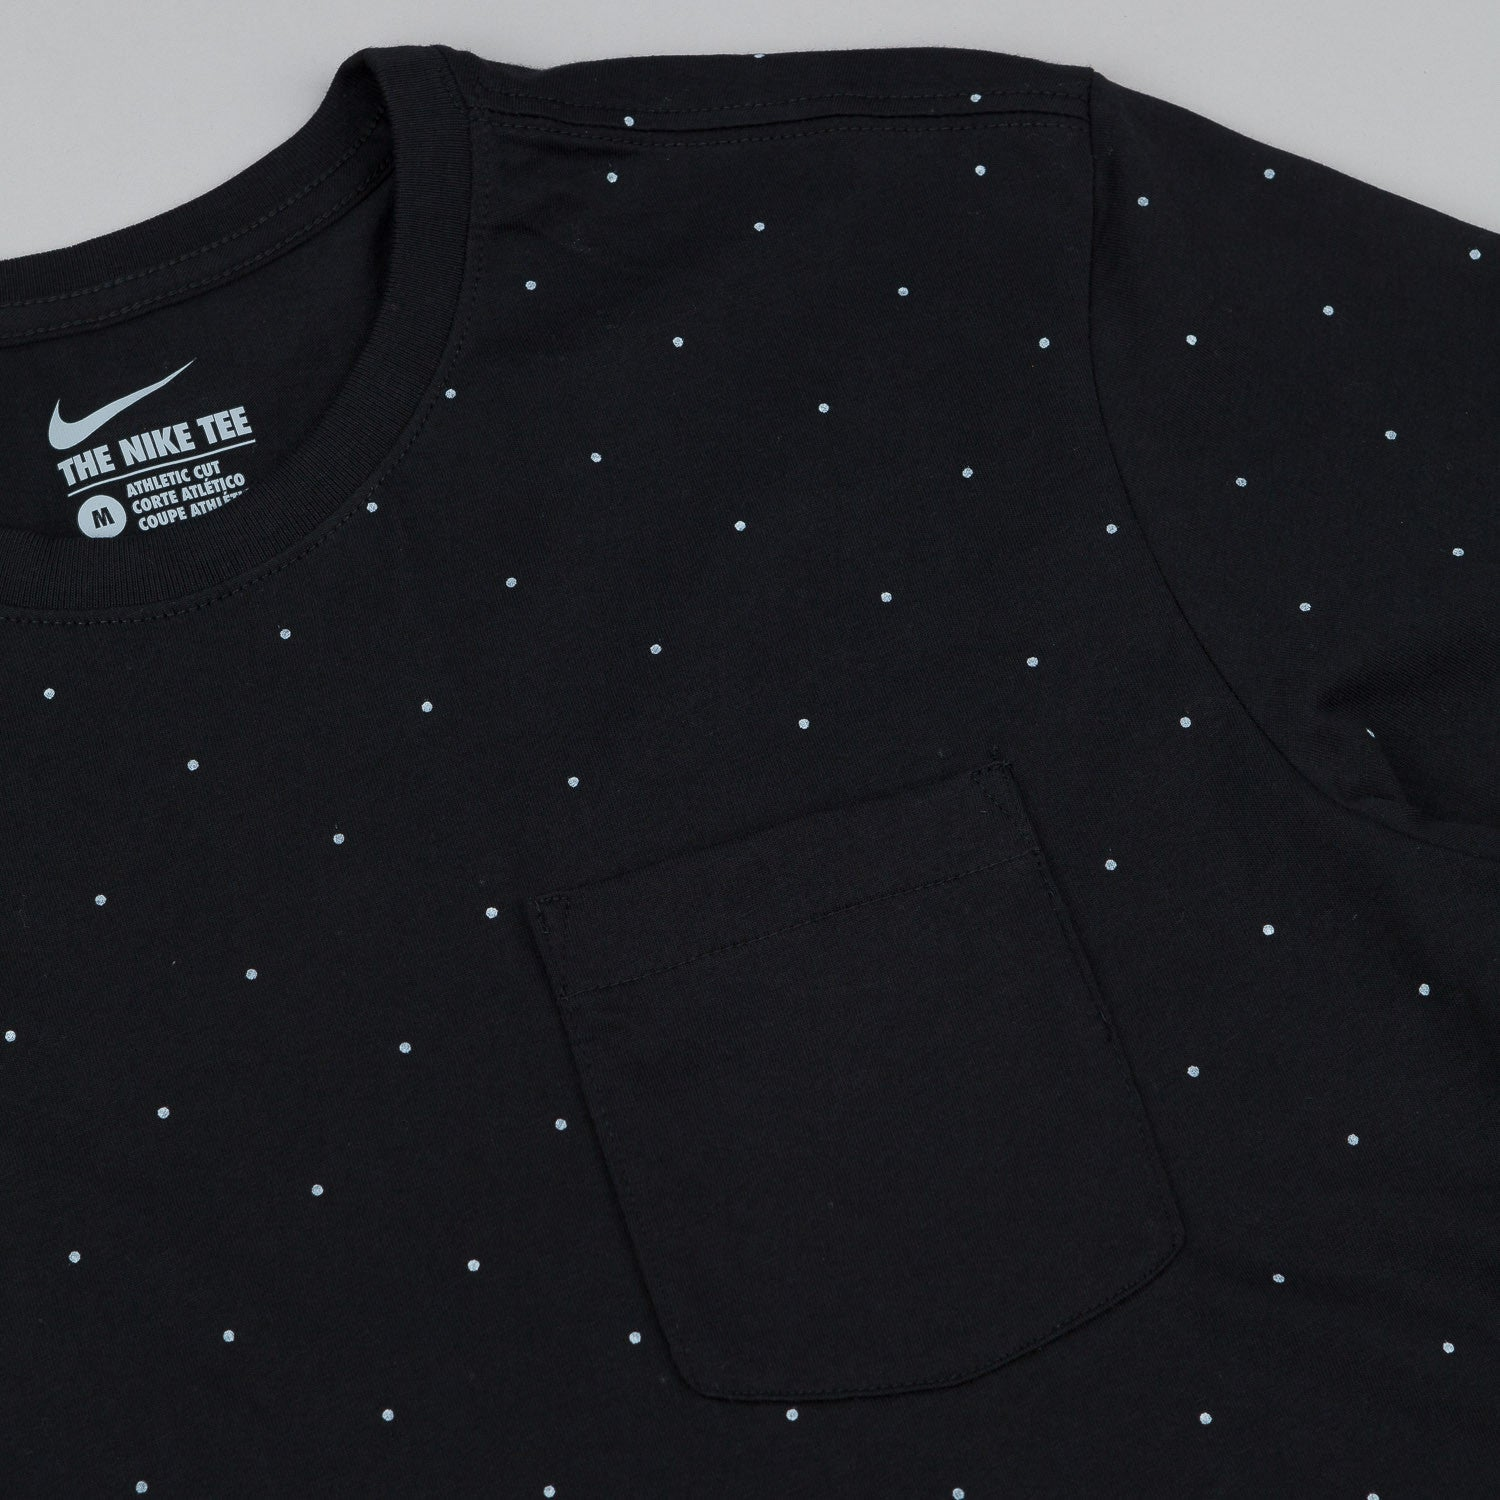 Nike SB AOP Micro Dot Short Sleeve T-Shirt - Black / White